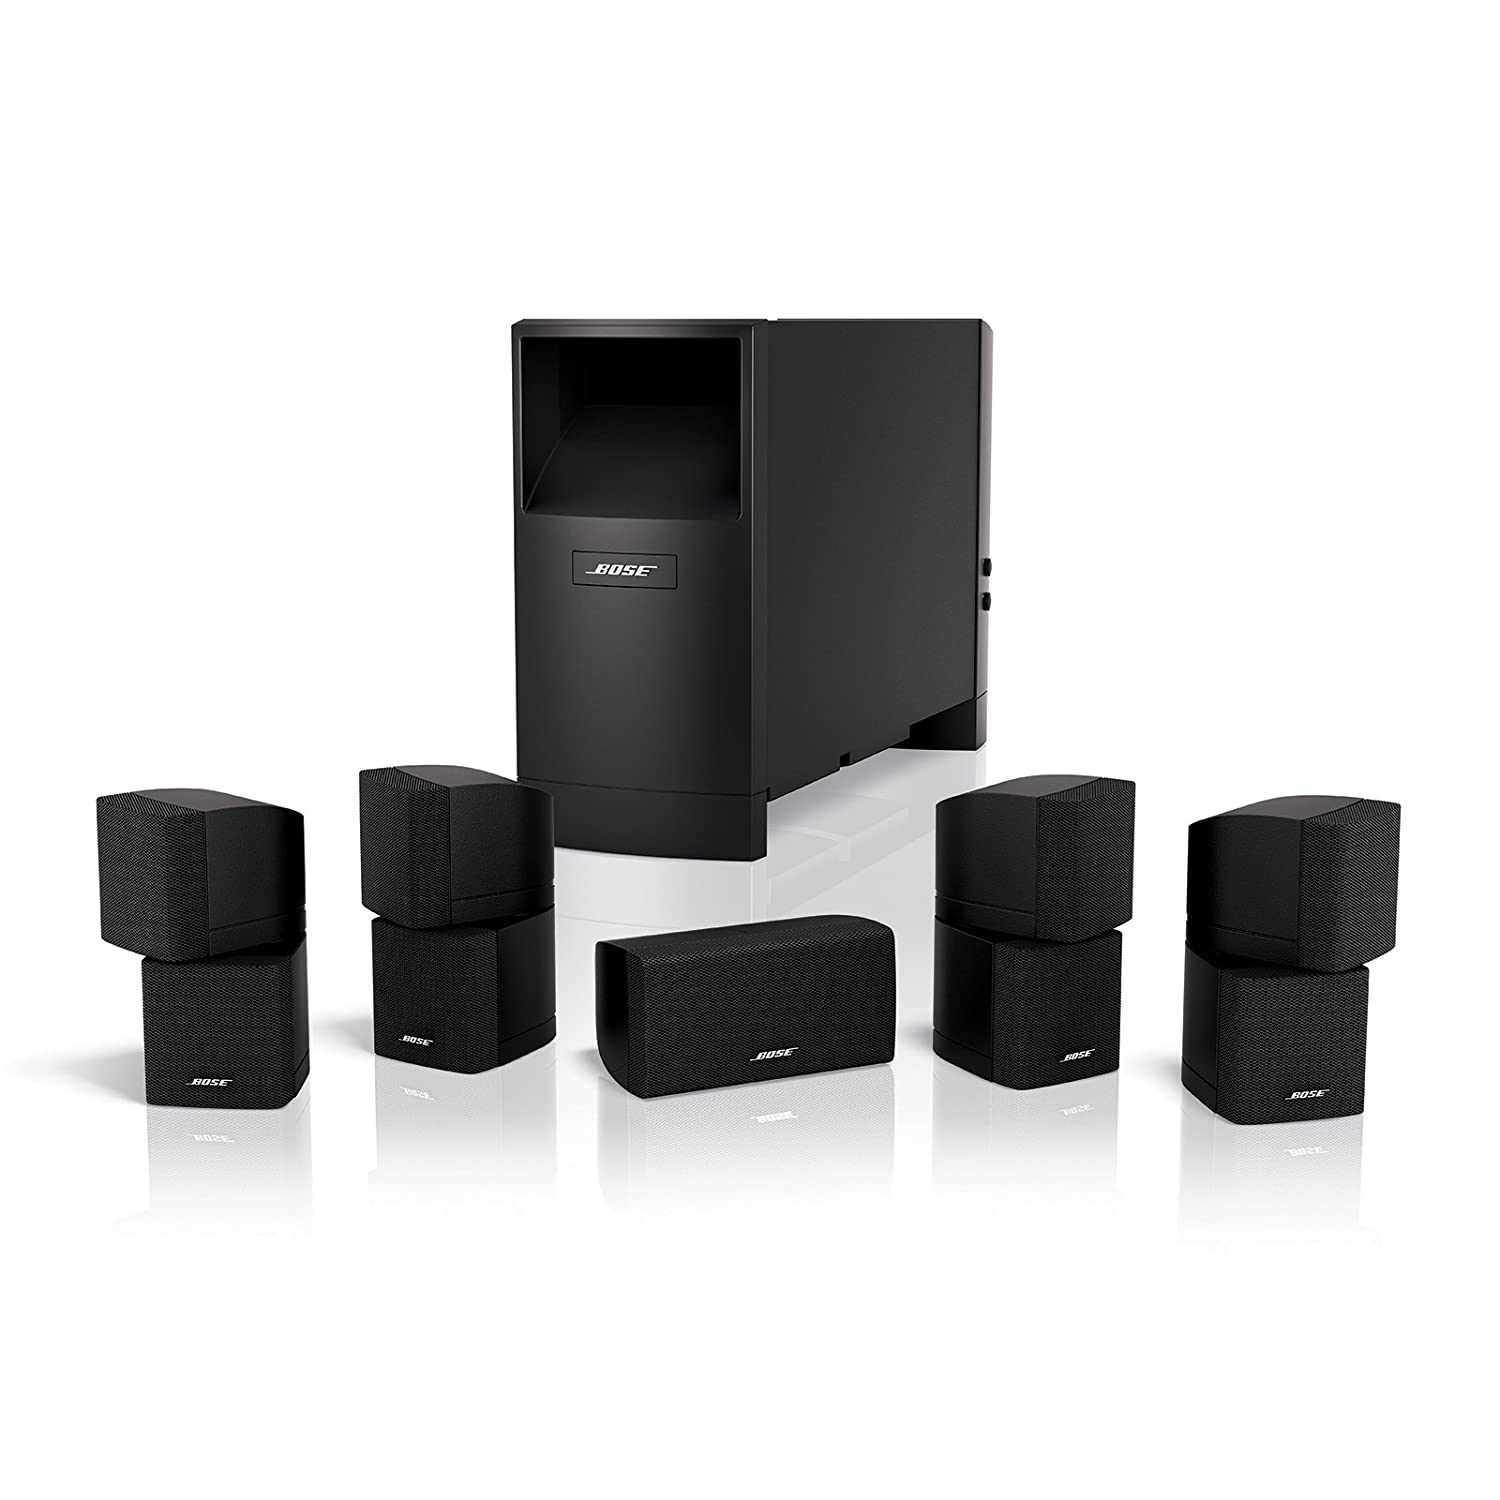 Amazon.com: Bose Acoustimass 10 Series IV Home Entertainment Speaker ...